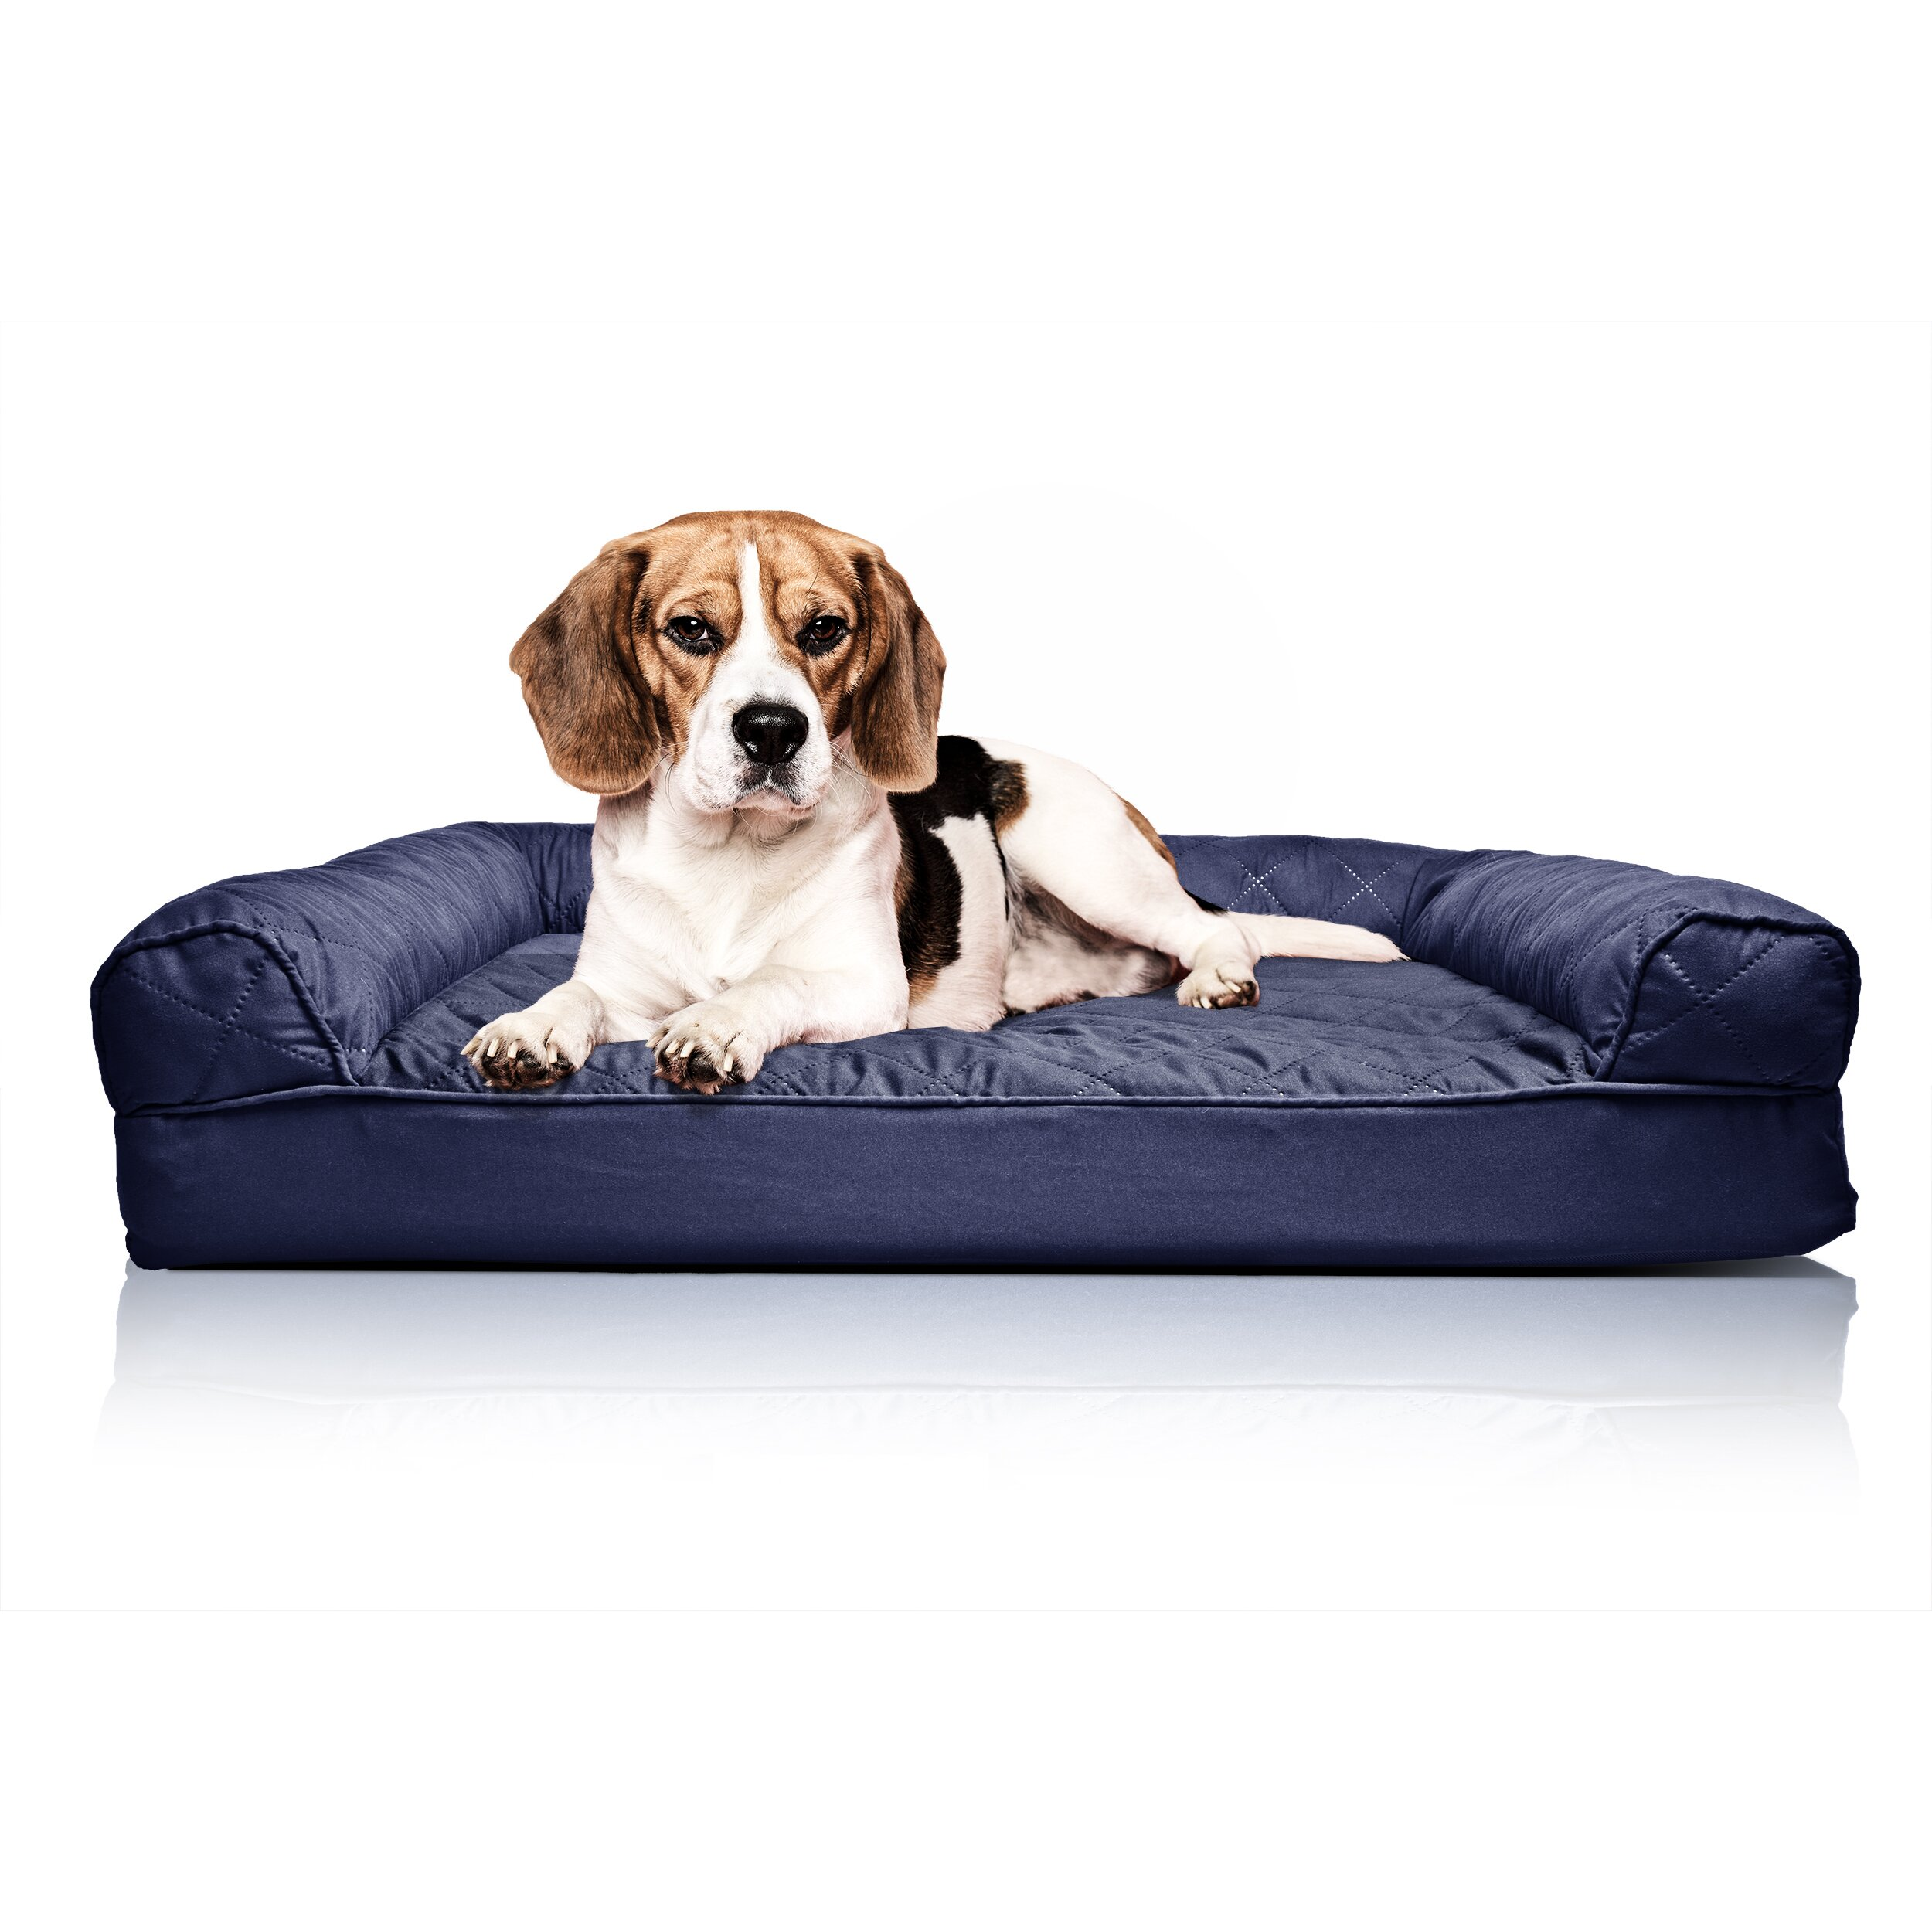 zoey tails quilted orthopedic sofa style dog bed reviews. Black Bedroom Furniture Sets. Home Design Ideas